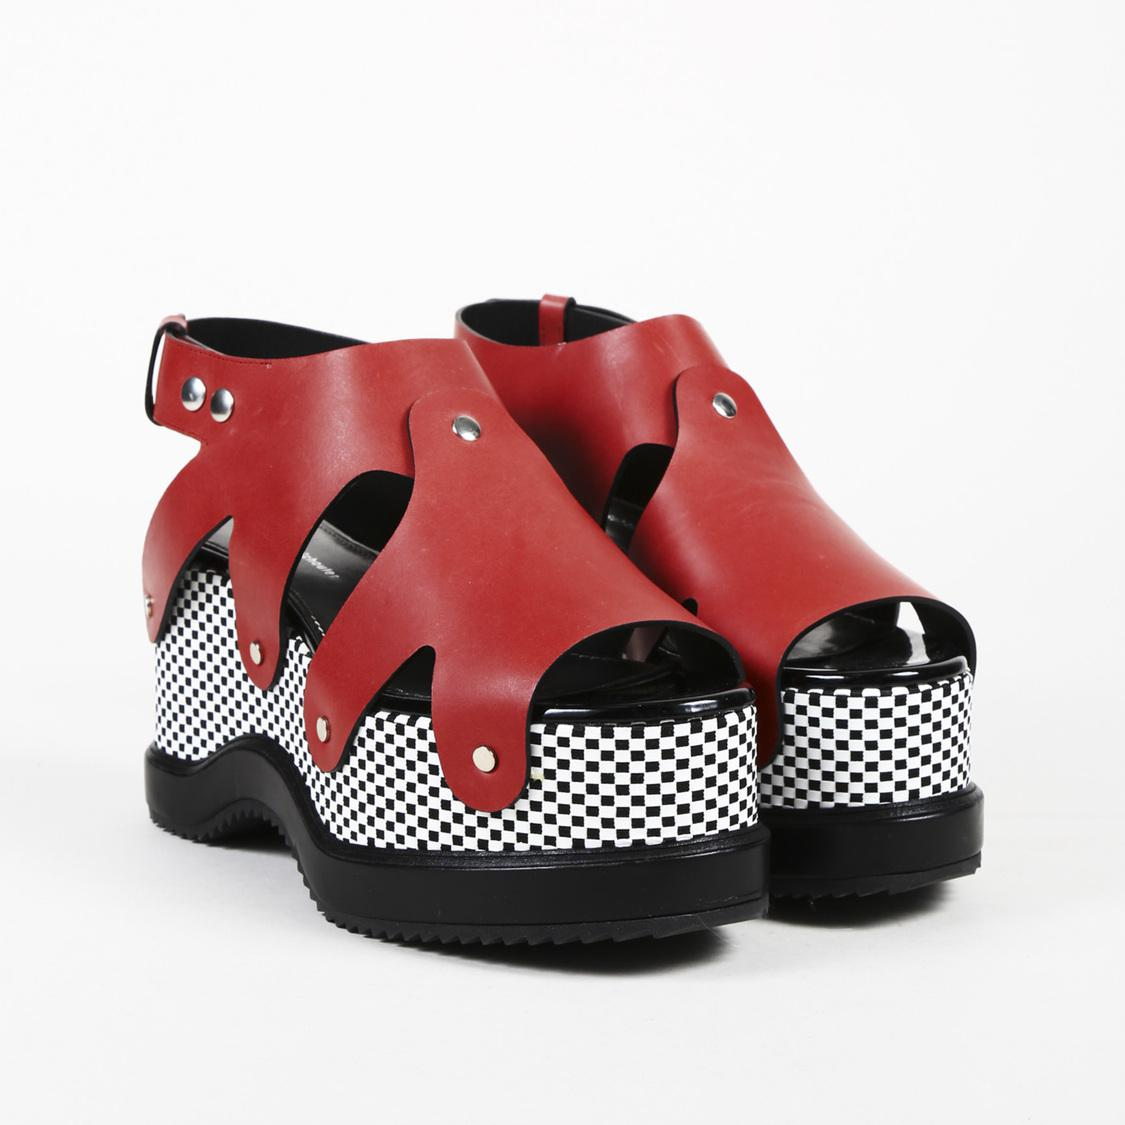 718e298ac76 Lyst - Proenza Schouler Checked Leather Platform Sandals in Red